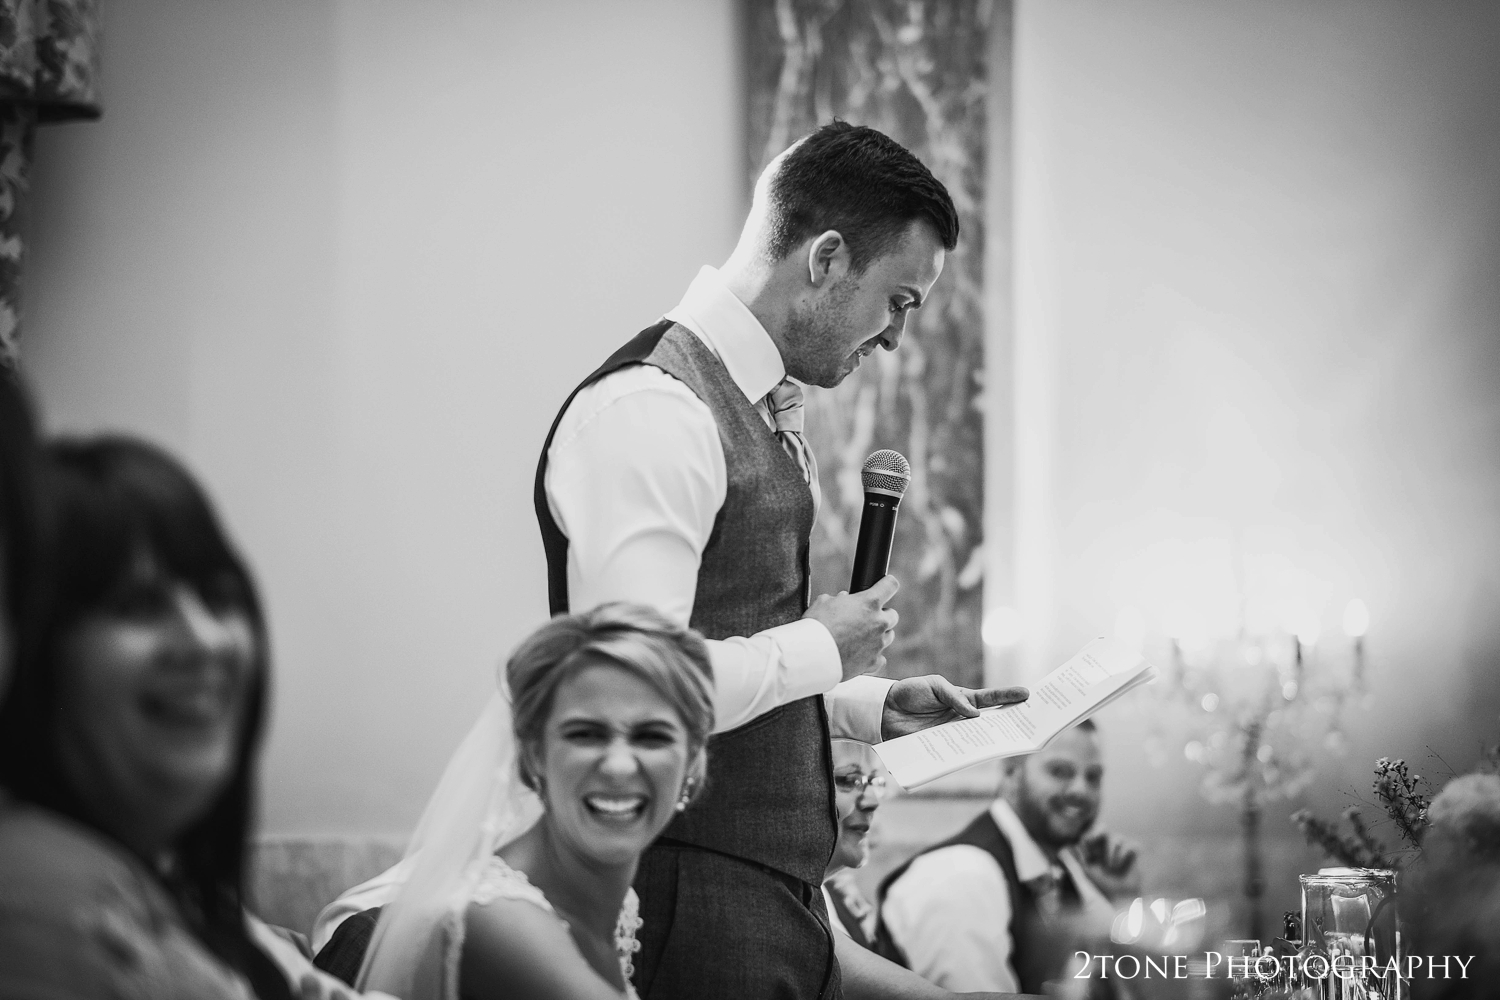 The groom stands and delivers a funny and witty speech that has his wife in fits of giggles.